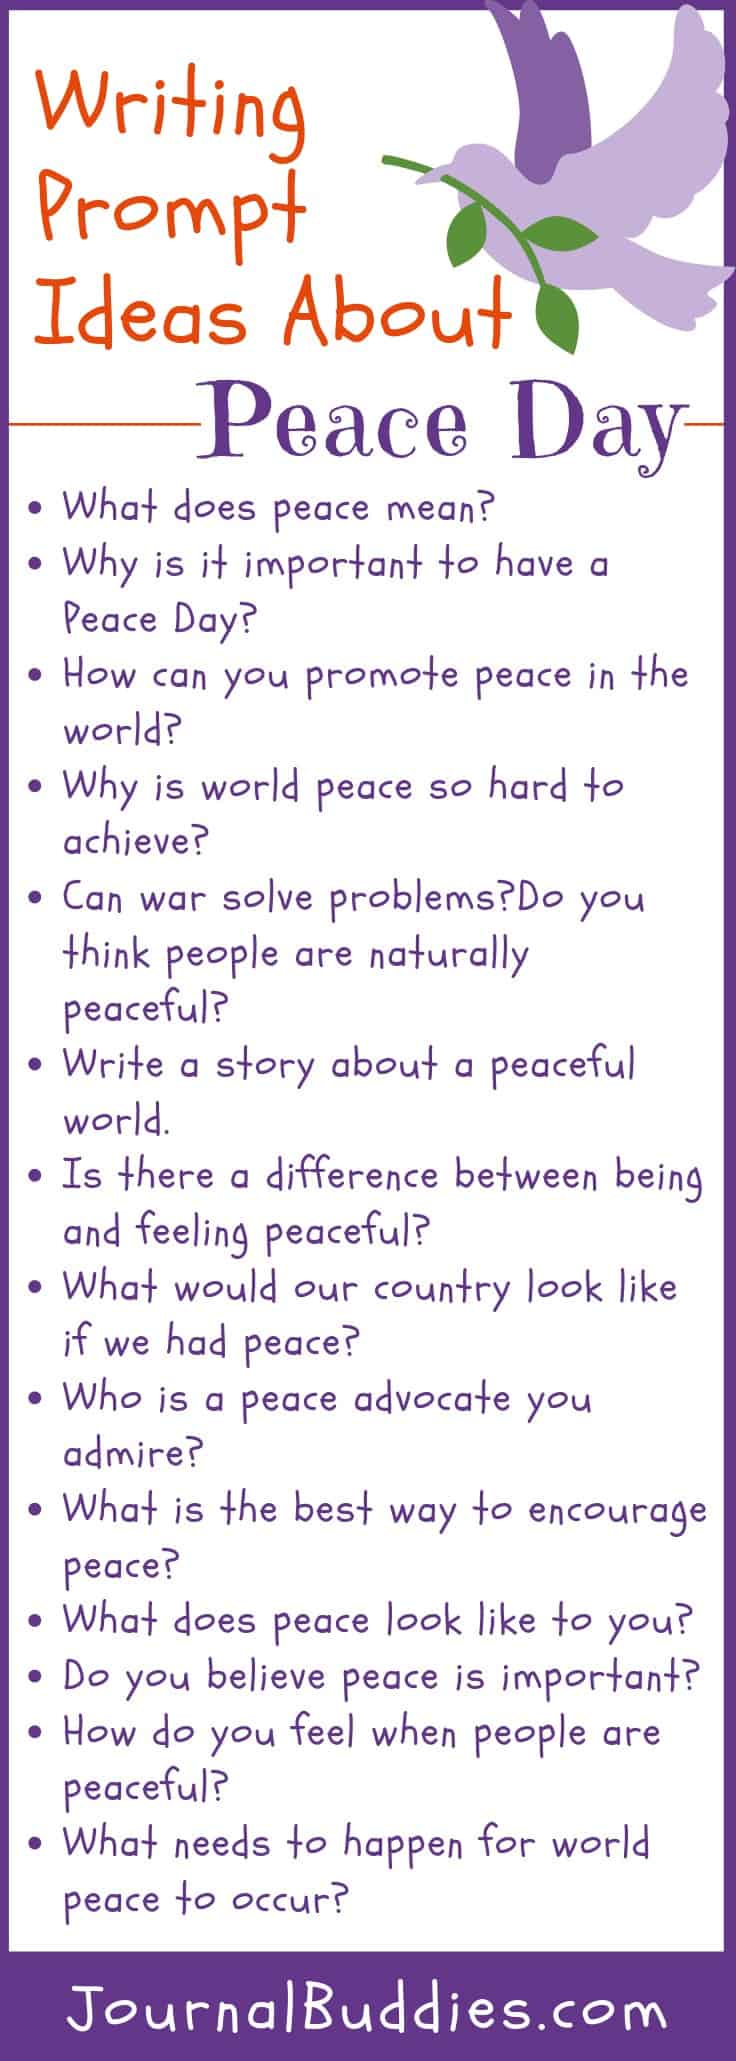 International Day of Peace Writing Ideas for Kids